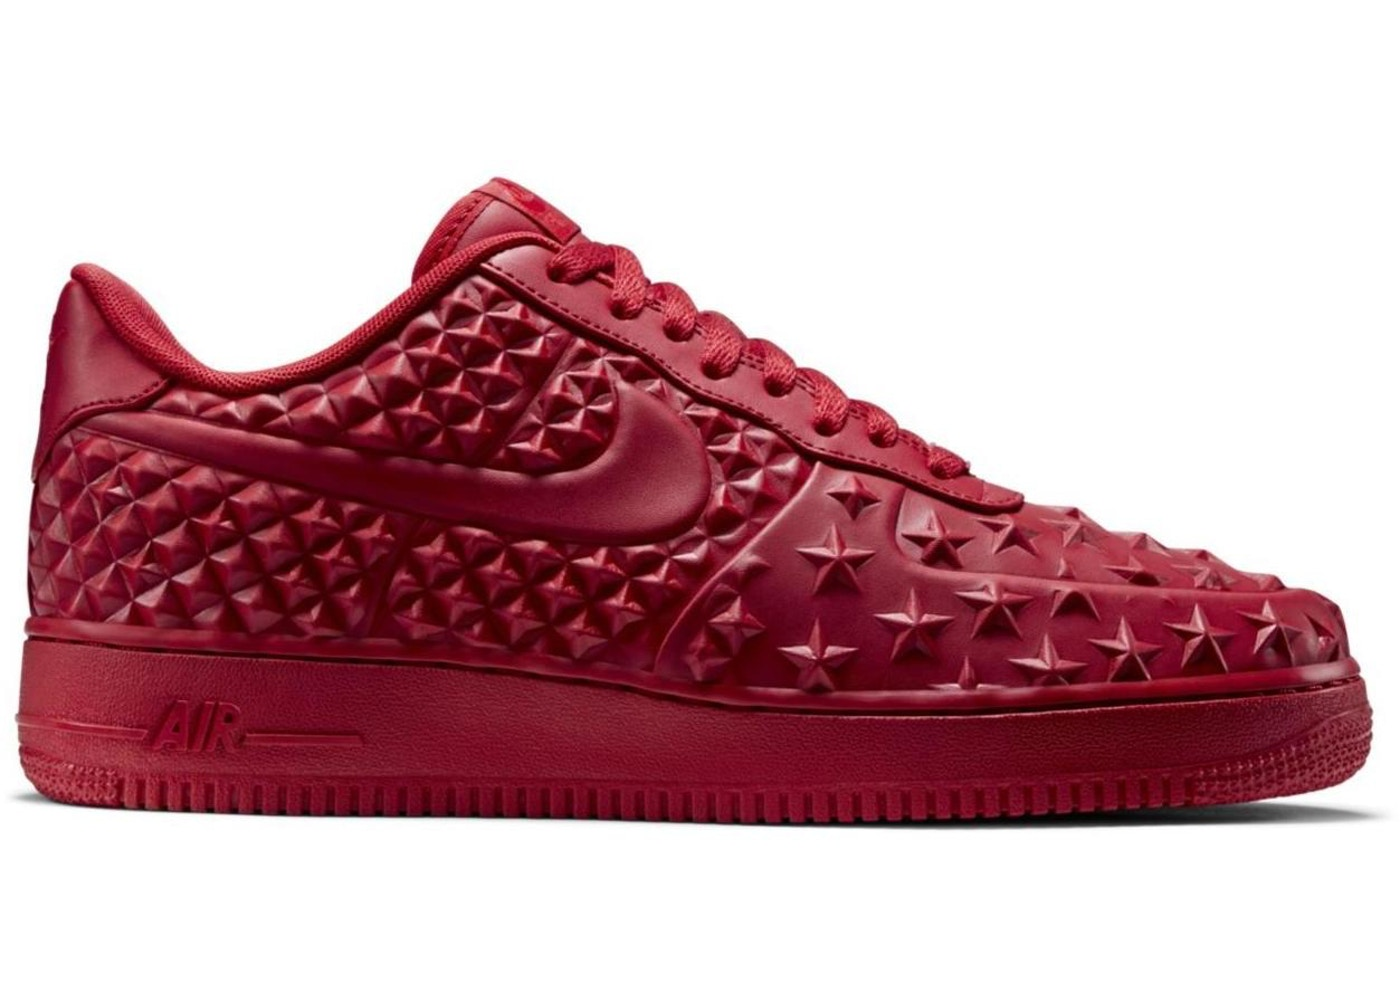 wholesale dealer 7b4b8 aedd8 Air Force 1 Low Independence Day Red